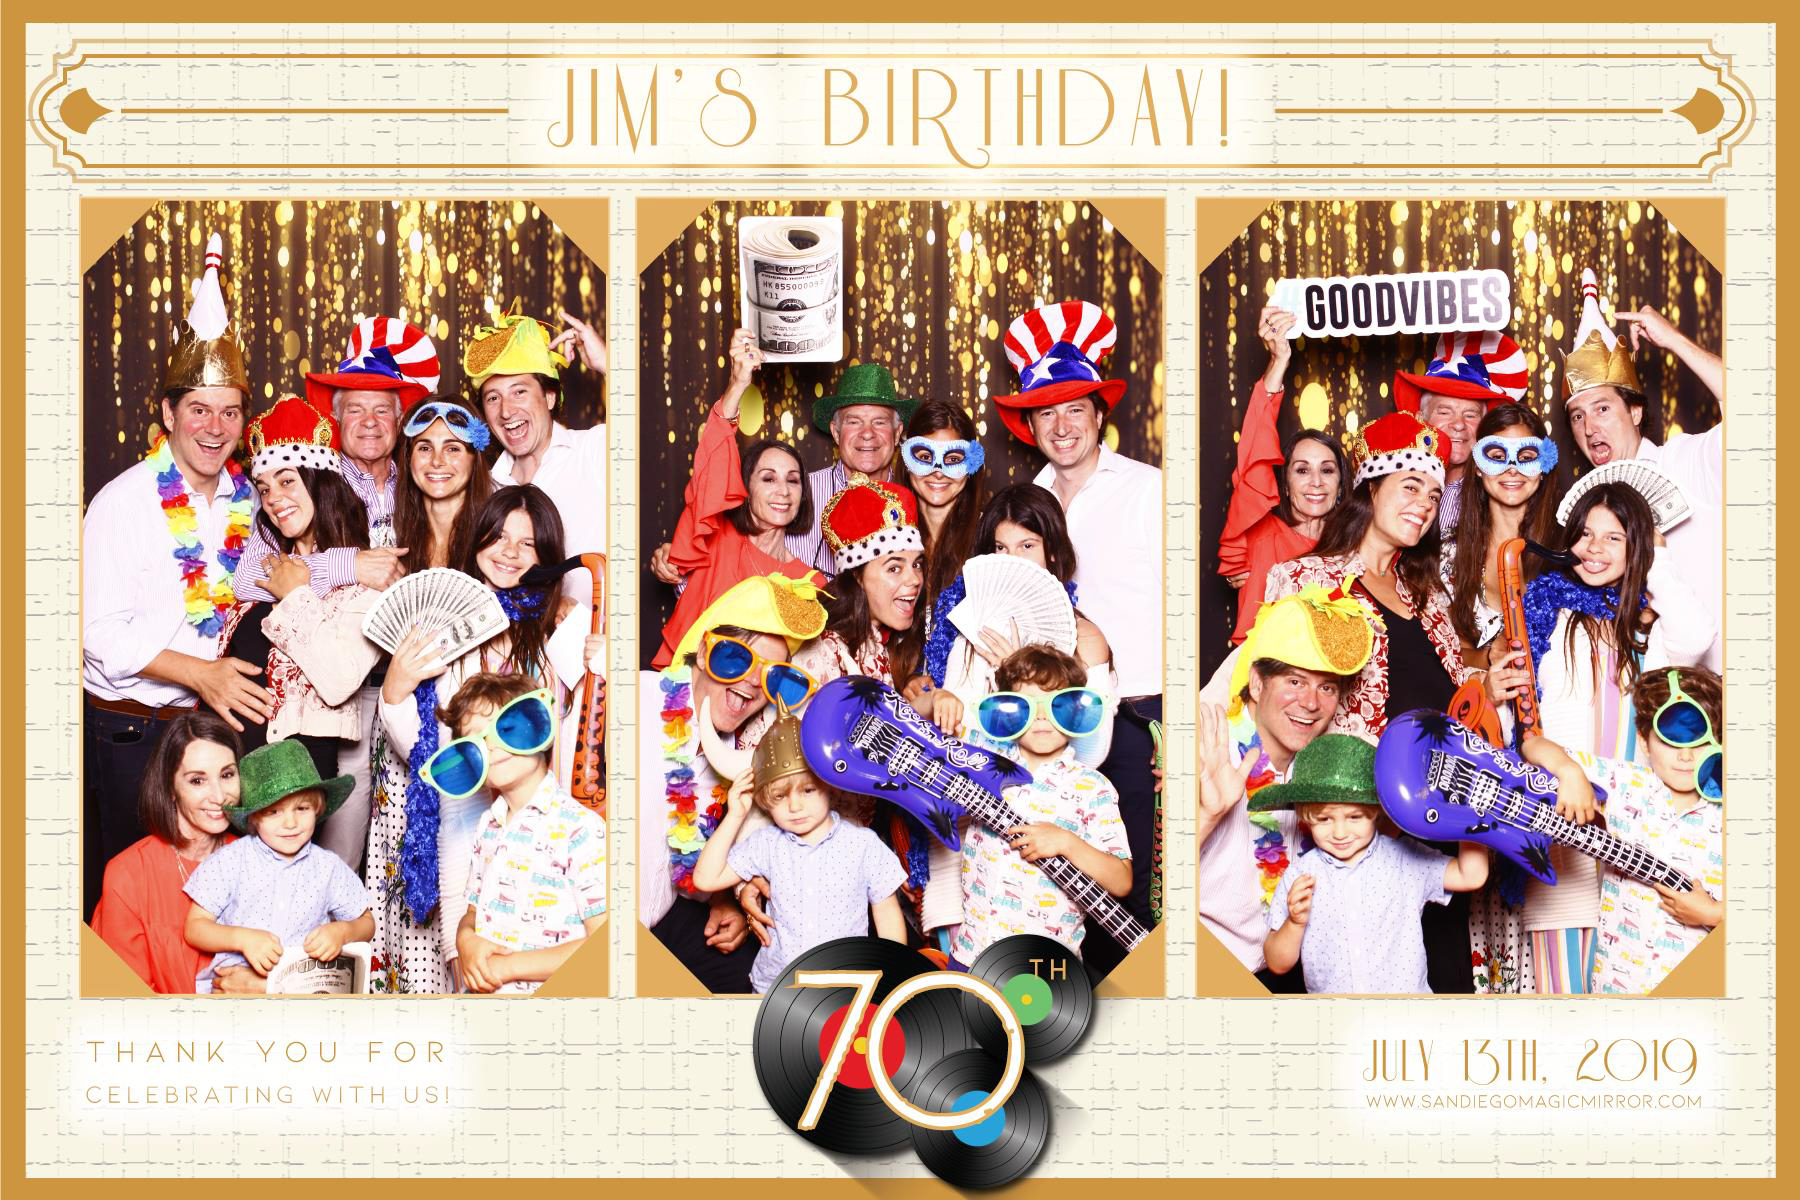 Unique magic mirror photo booth rental for weddings, birthday parties, corporate events, quinceanera, bar mitzvah in San Diego, CA